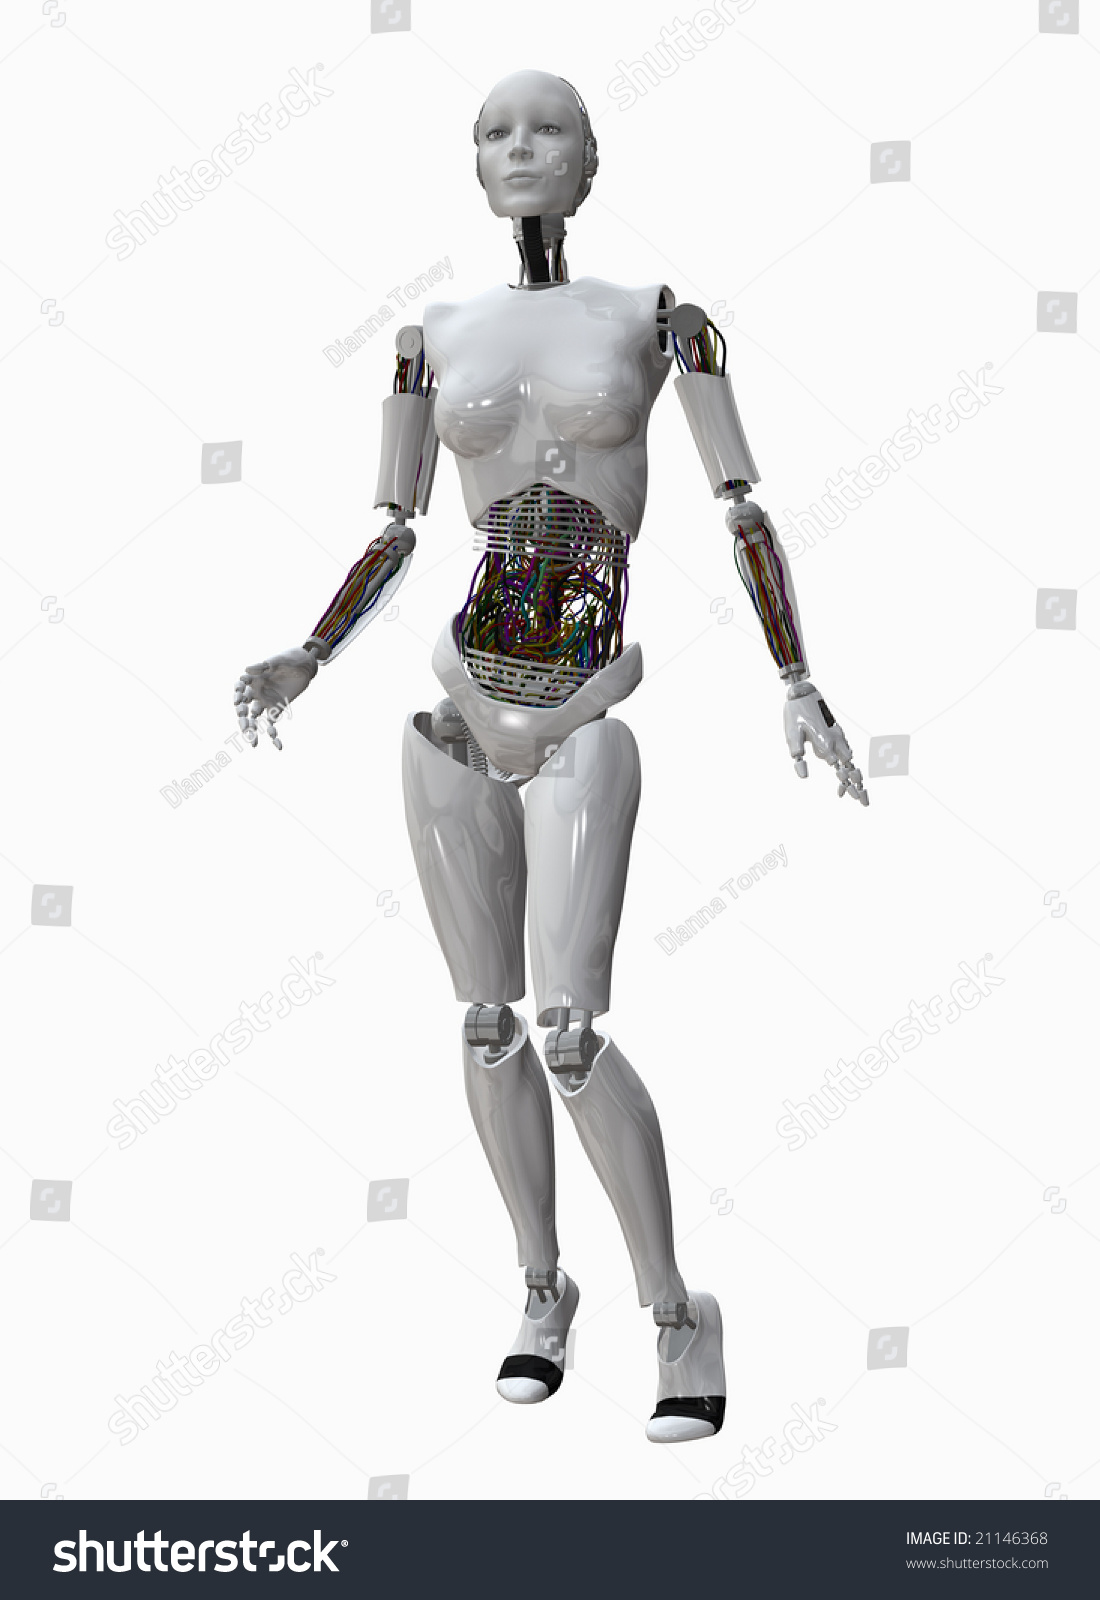 stock photo android style robot female with colorful wiring 21146368 android style robot female colorful wiring stock illustration,Wiring A Robot